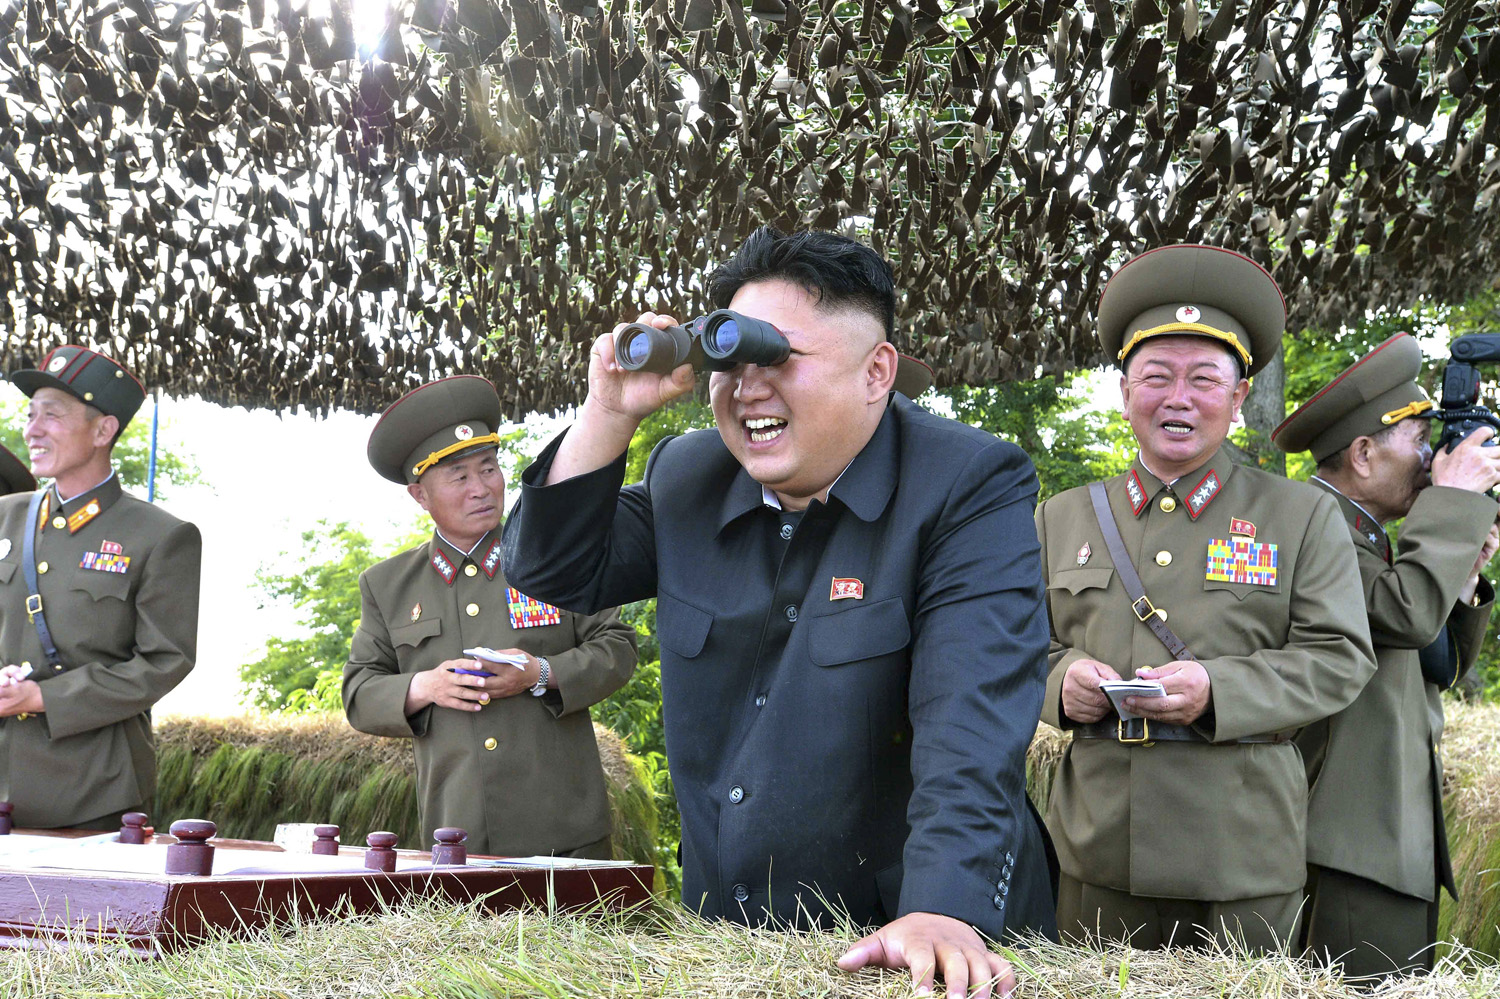 North Korean leader Kim Jong Un looks through a pair of binoculars during an inspection of the Hwa Islet Defence Detachment standing guard over a forward post off the east coast of the Korean peninsula, in this undated photo released by North Korea's Korean Central News Agency (KCNA) in Pyongyang on July 1, 2014.